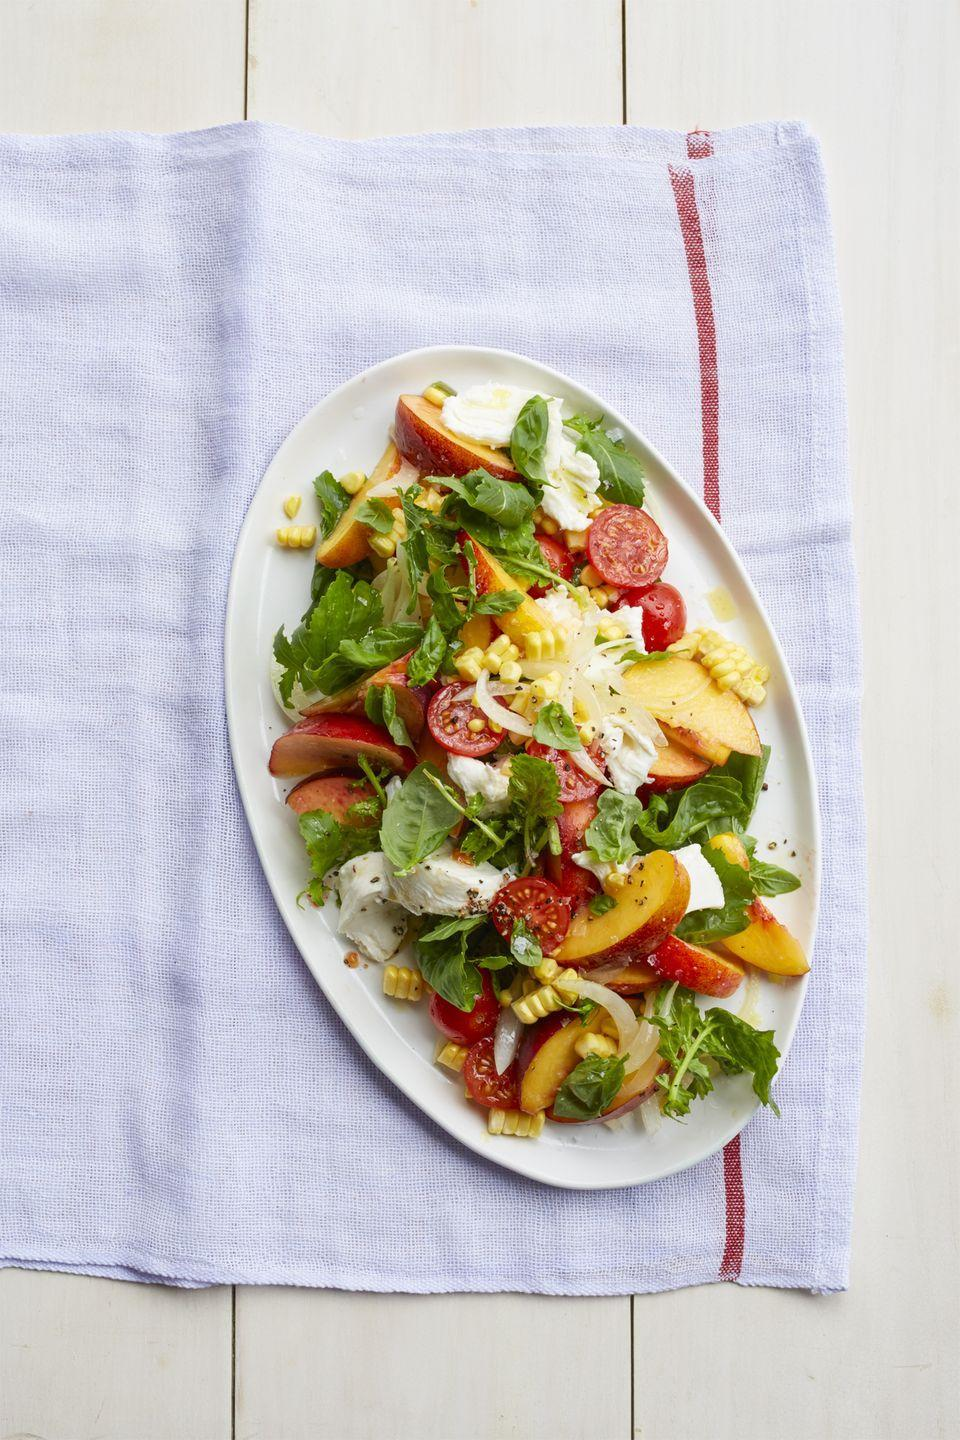 "<p>Fresh peaches add a new layer of flavor to typical caprese.</p><p><a href=""https://www.womansday.com/food-recipes/food-drinks/recipes/a55295/peach-caprese-salad-recipe/"" rel=""nofollow noopener"" target=""_blank"" data-ylk=""slk:Get the Peach Caprese Salad recipe."" class=""link rapid-noclick-resp""><em>Get the Peach Caprese Salad recipe.</em></a> </p>"